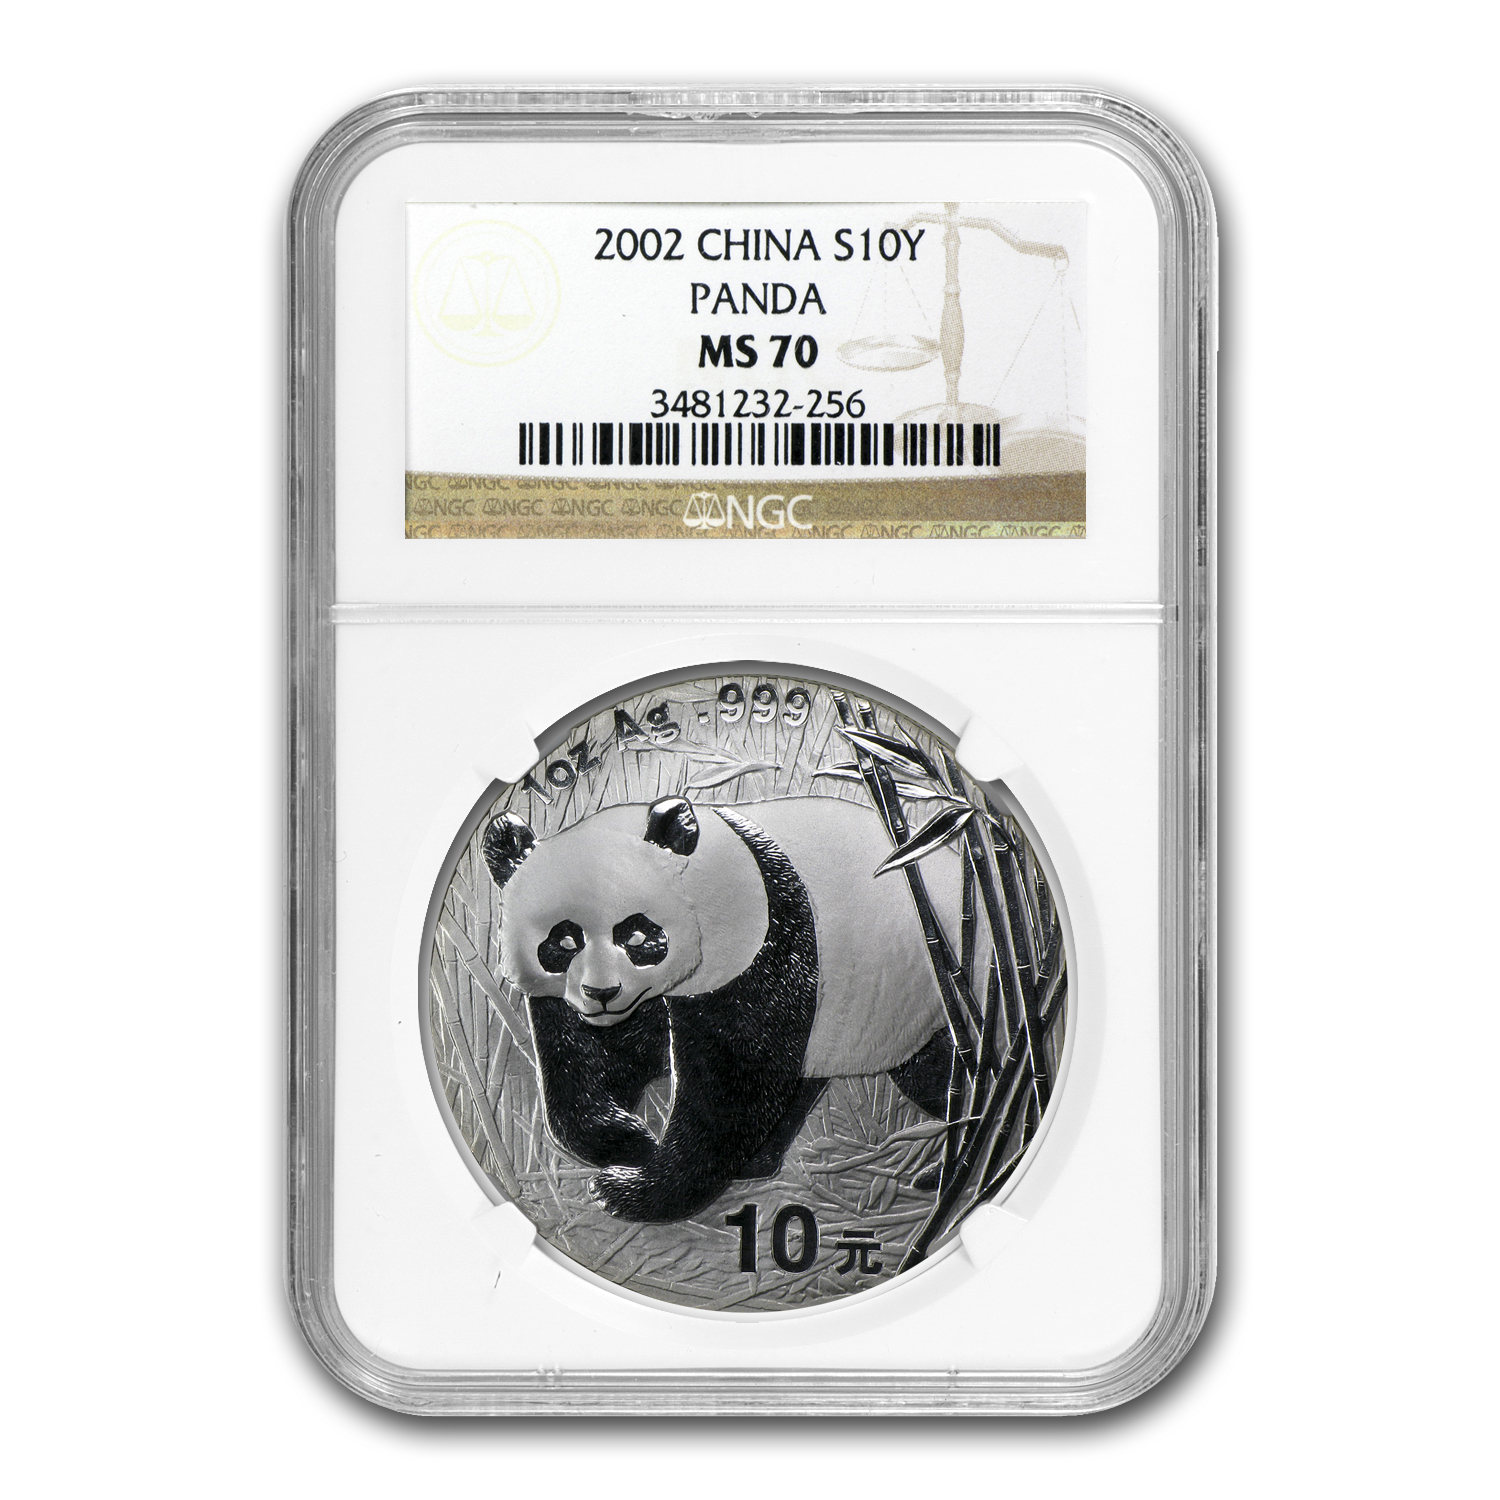 2002 Silver Chinese Panda 1 oz - MS-70 NGC